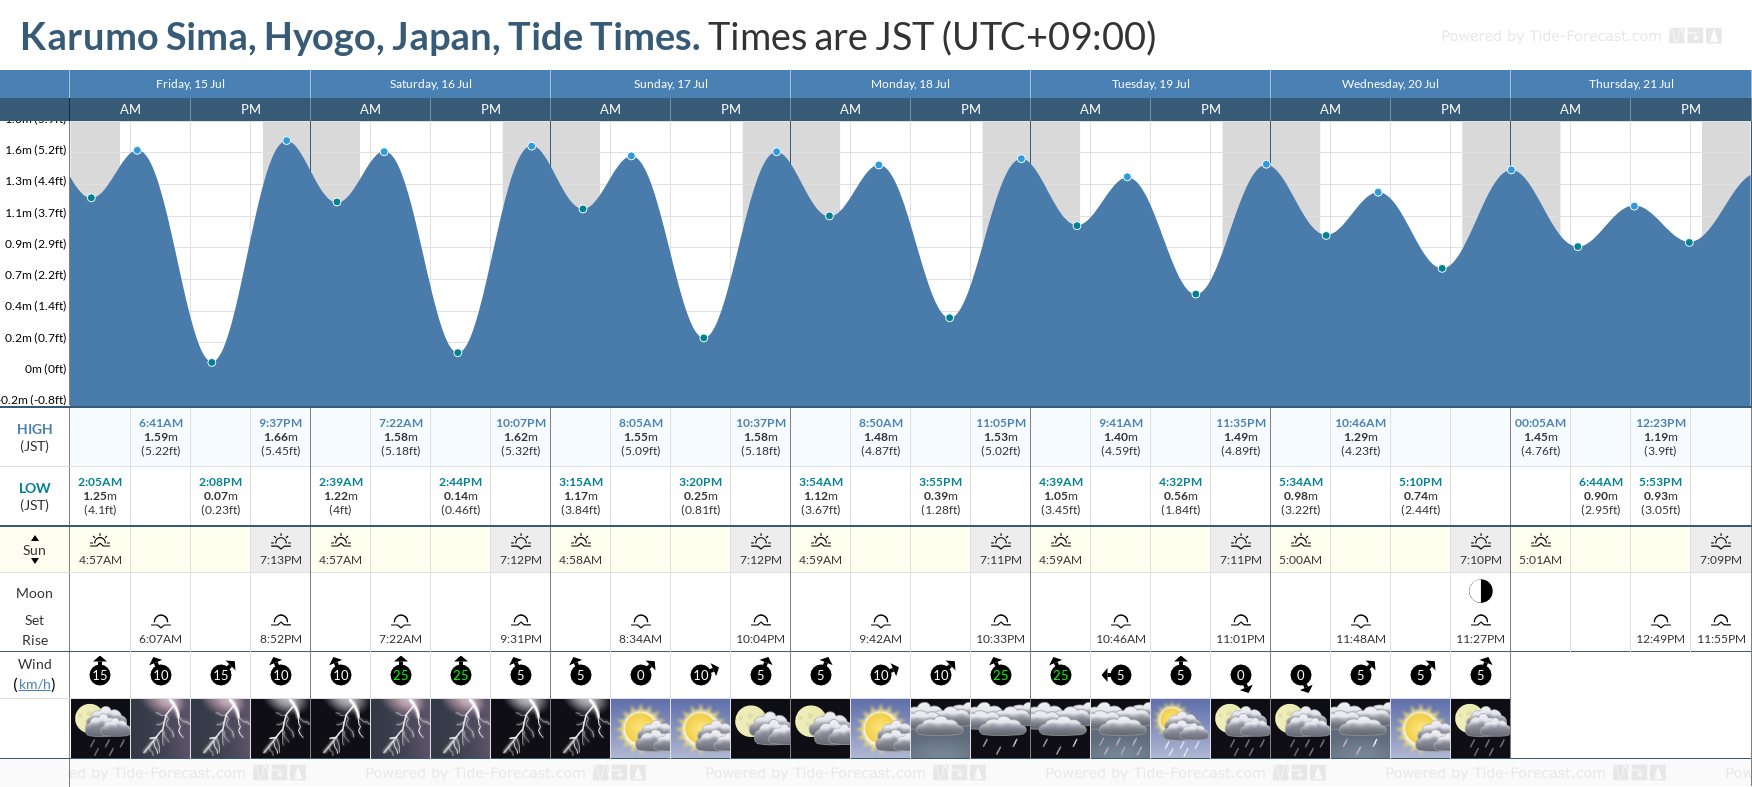 Karumo Sima, Hyogo, Japan Tide Chart including high and low tide tide times for the next 7 days